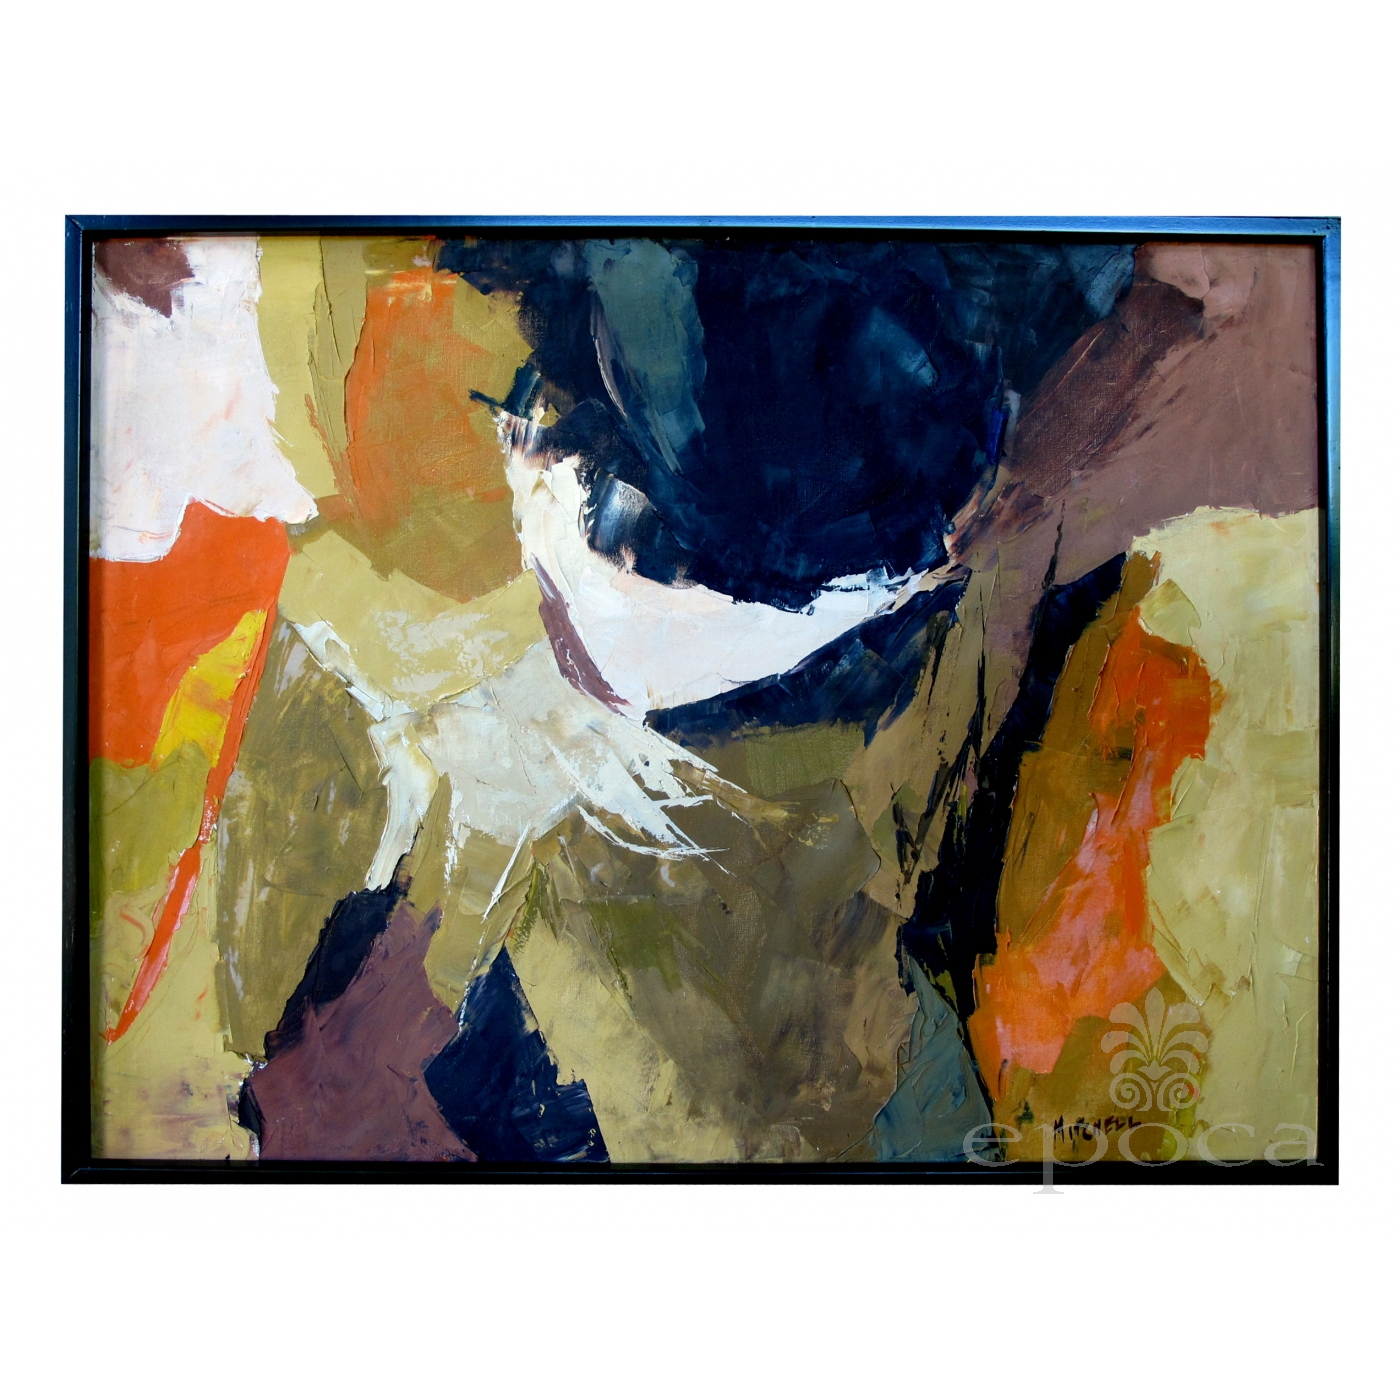 An eloquent american 1960s abstract expressionist painting signed mitchell kit mitchell listed as